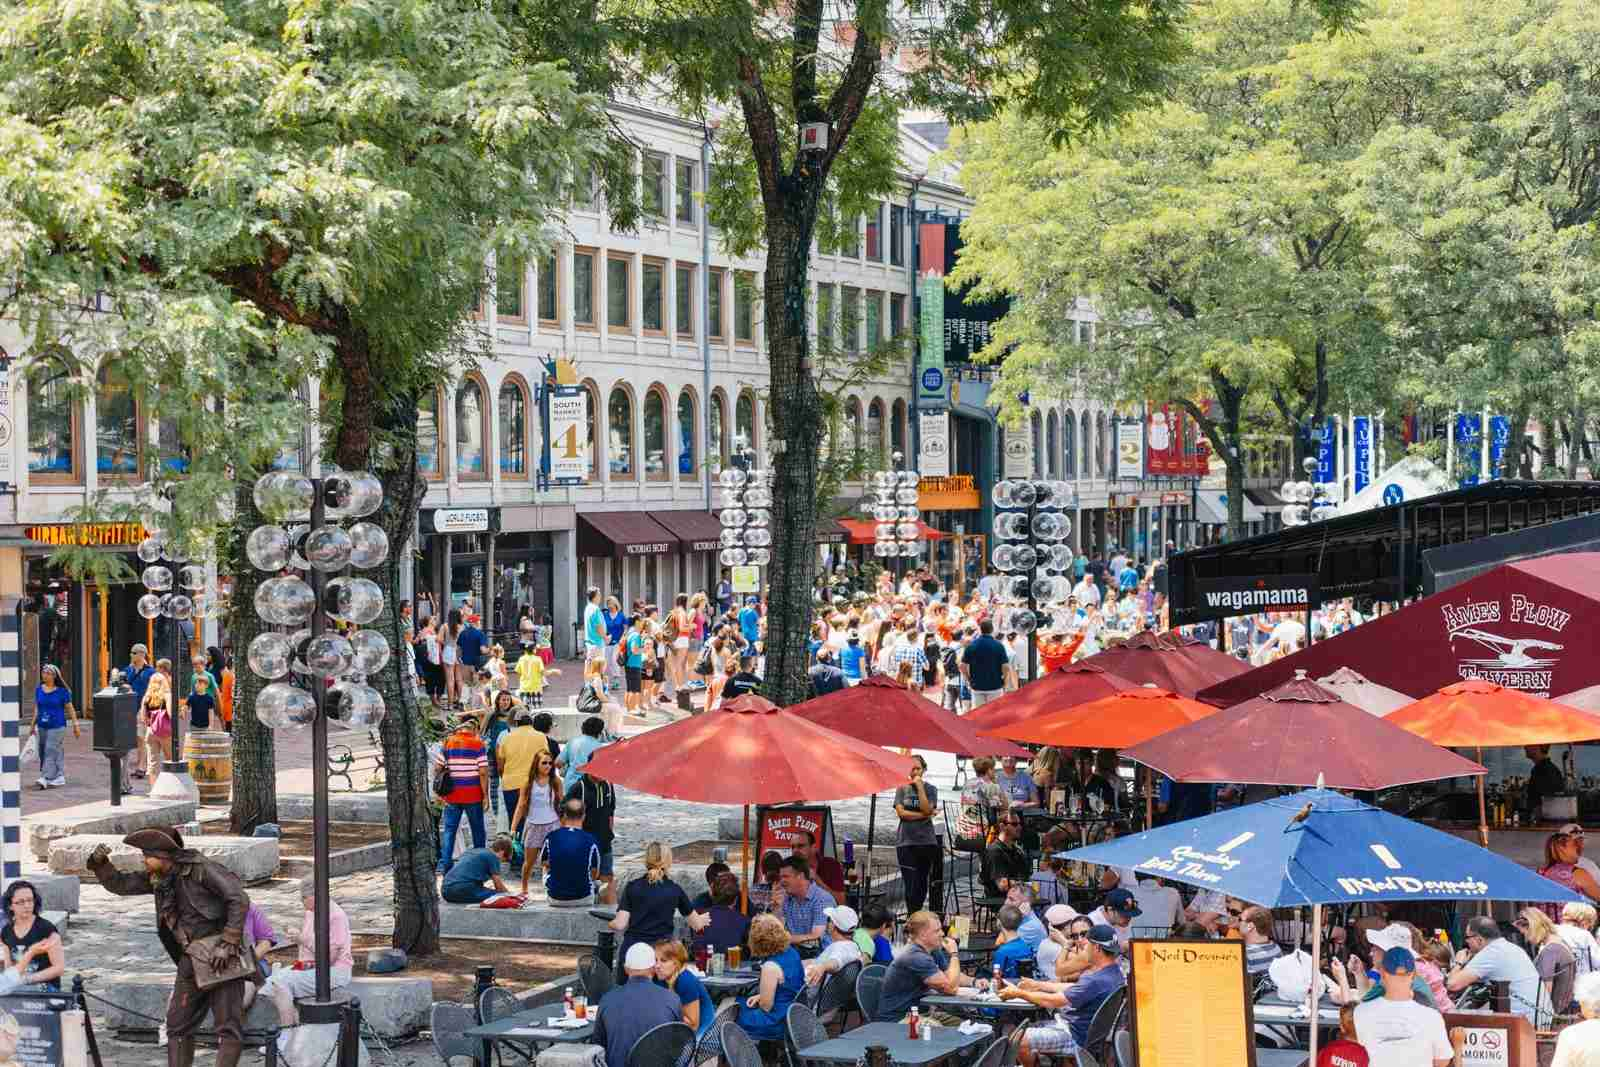 The Faneuil Hall Marketplace. (Photo by Instants / Getty Images)